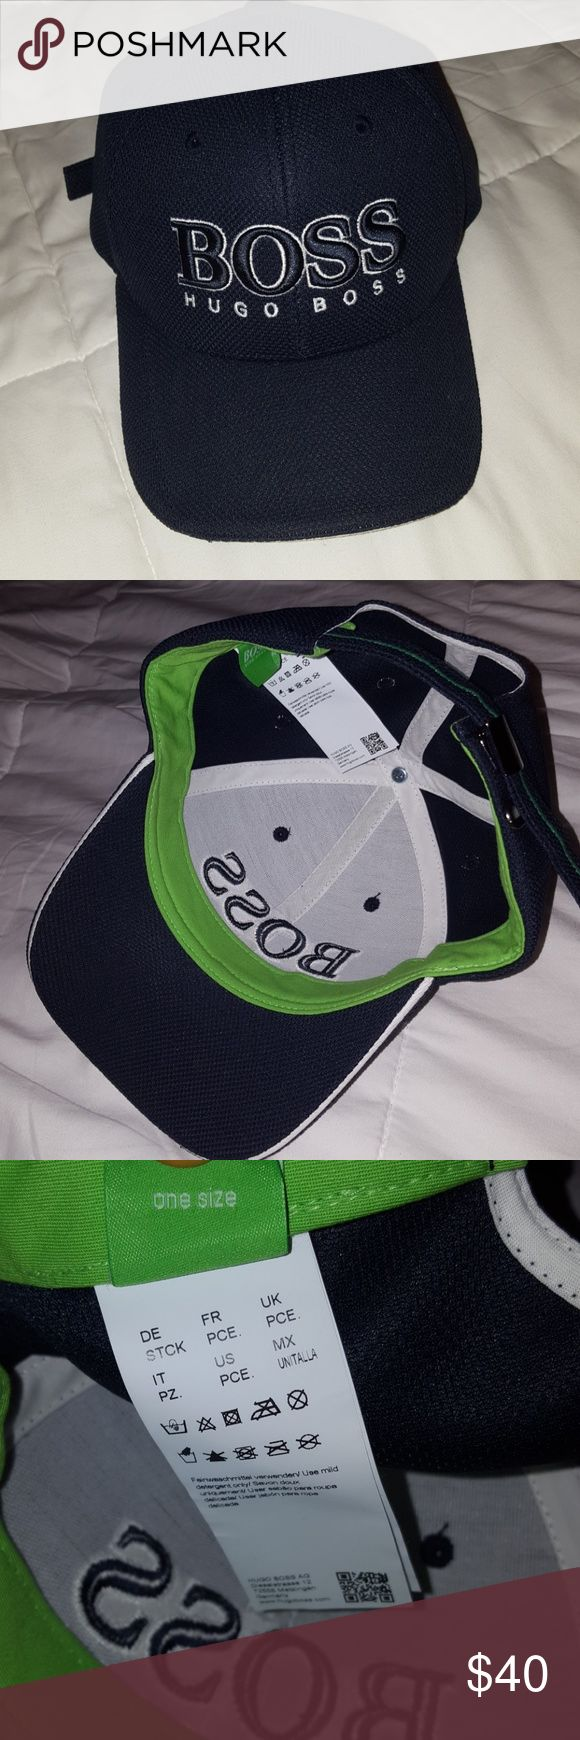 Hugo Boss Hat Navy blue and lime green accent Hugo Boss Hat for men/teen boy with adjustable strap in the back... worn once... Excellent Condition! Smoke and pet FREE home Hugo Boss Accessories Hats